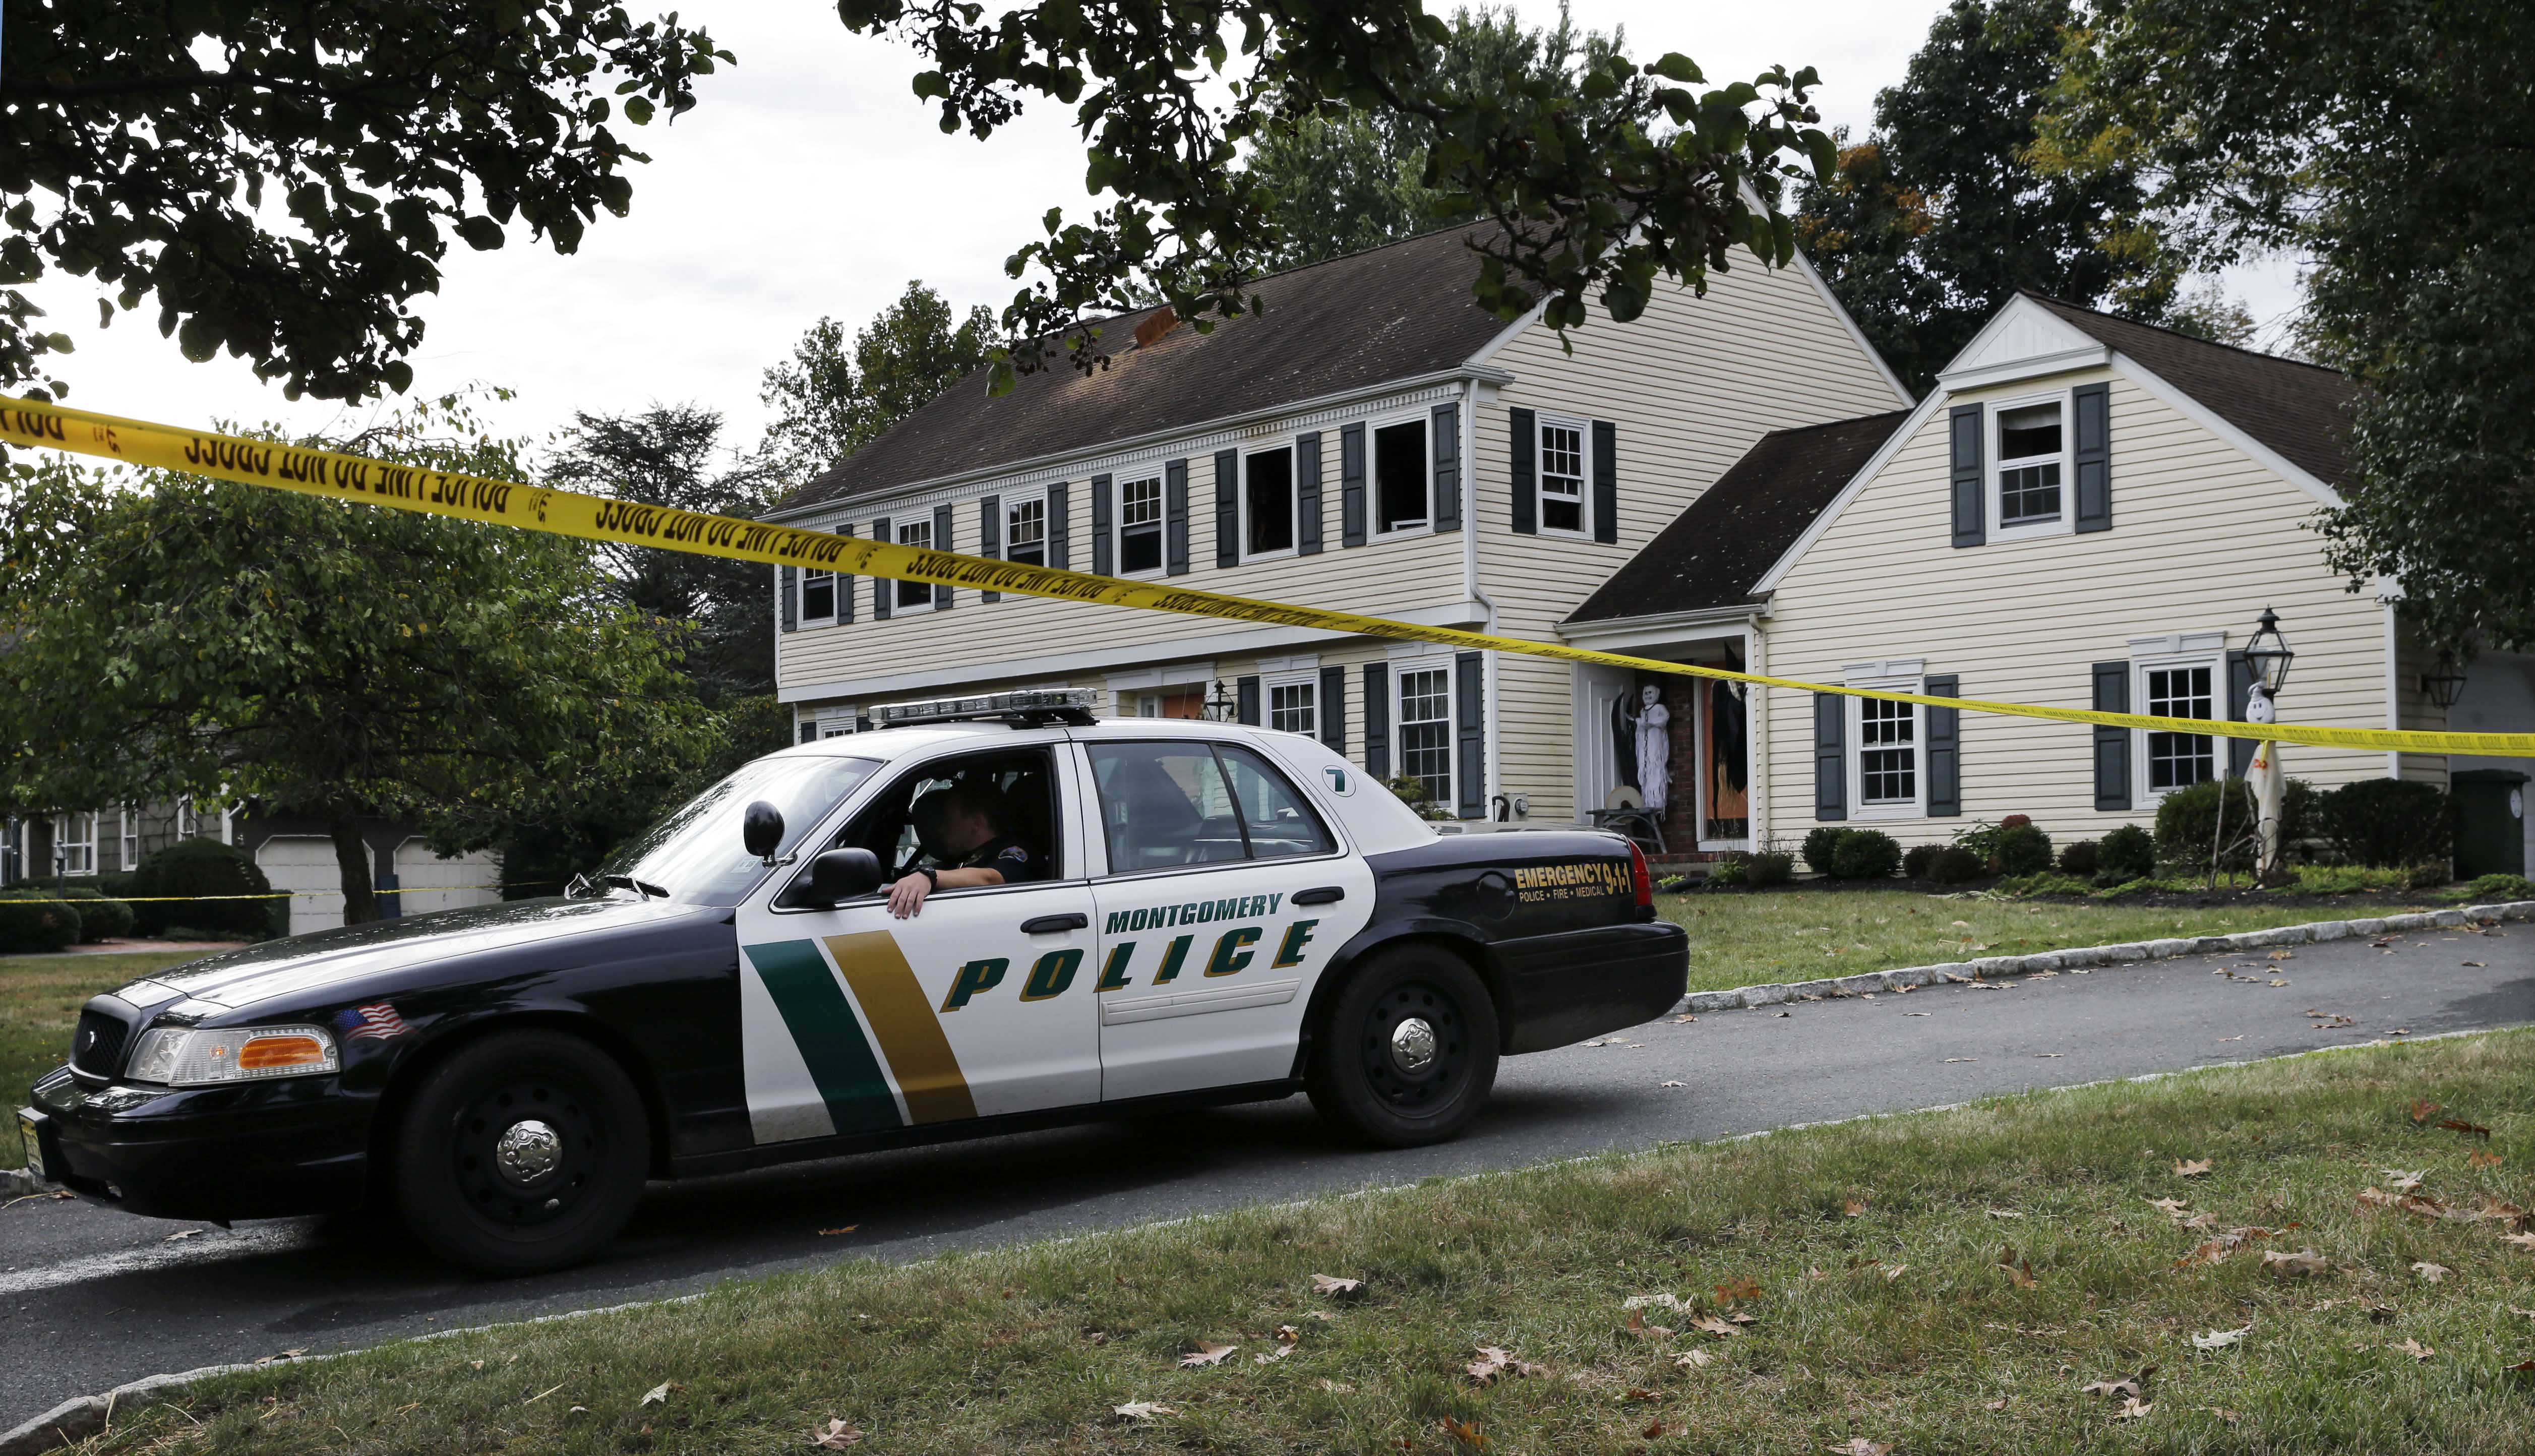 Deaths of hospital CEO and wife in fire ruled murder-suicide